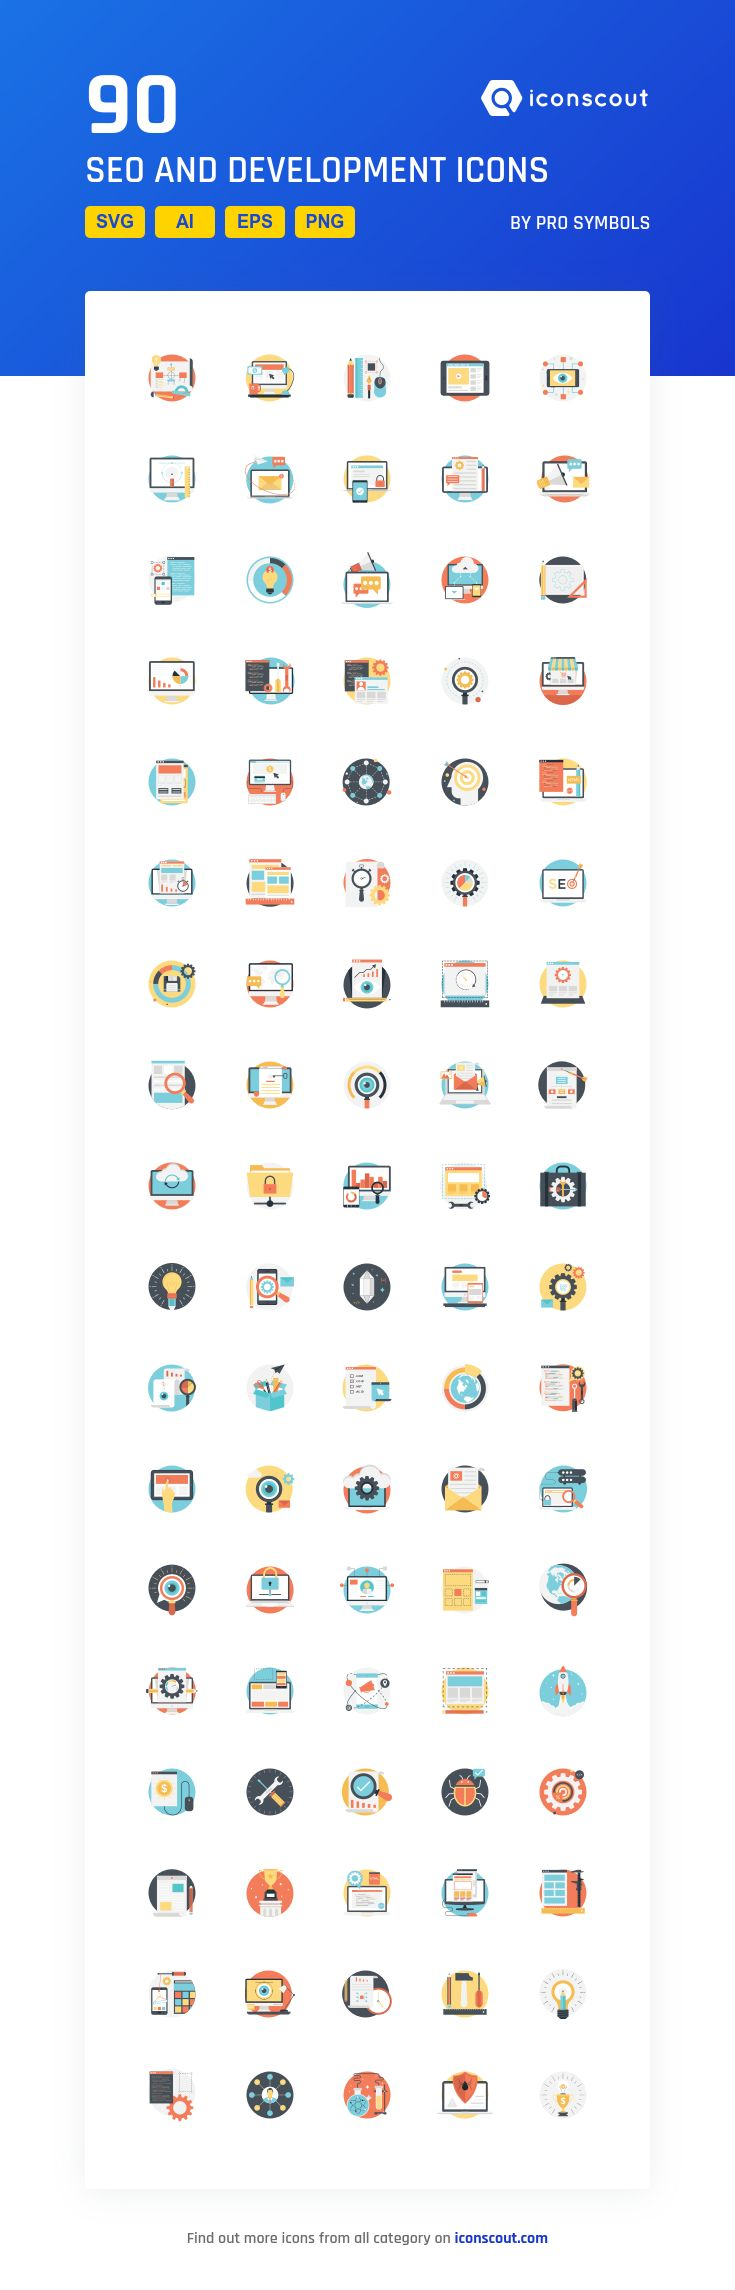 SEO And Development   Icon Pack - 90 Flat Icons